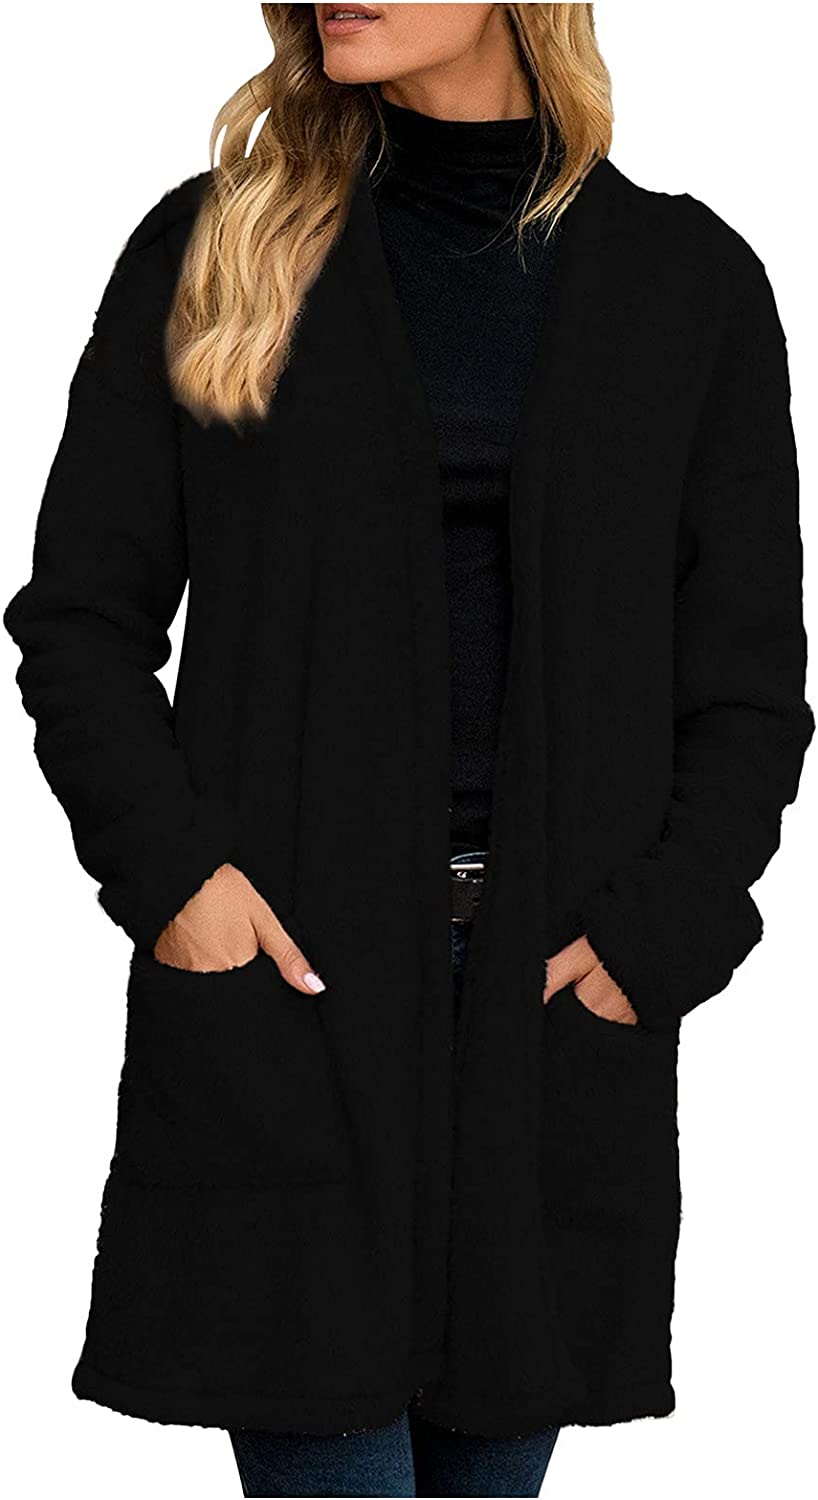 Women's Faux Wool Blend Trench Coats Fashion Long Sleeve V Neck Top Mid Long Plush Winter Warm Outwear with Pockets